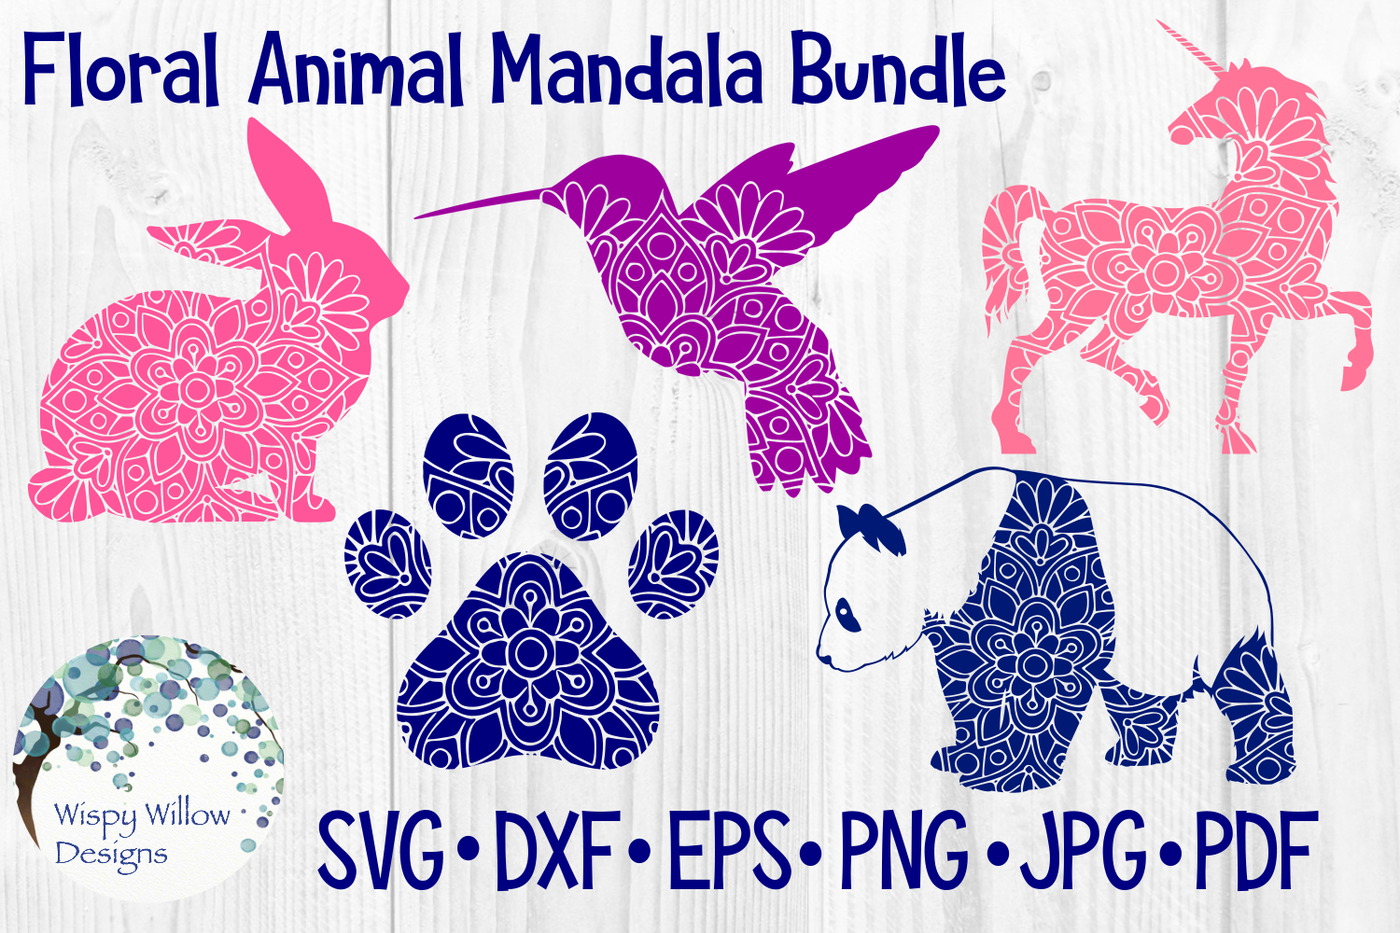 Floral Animal Mandala Bundle Unicorn Panda Bear Bird Paw